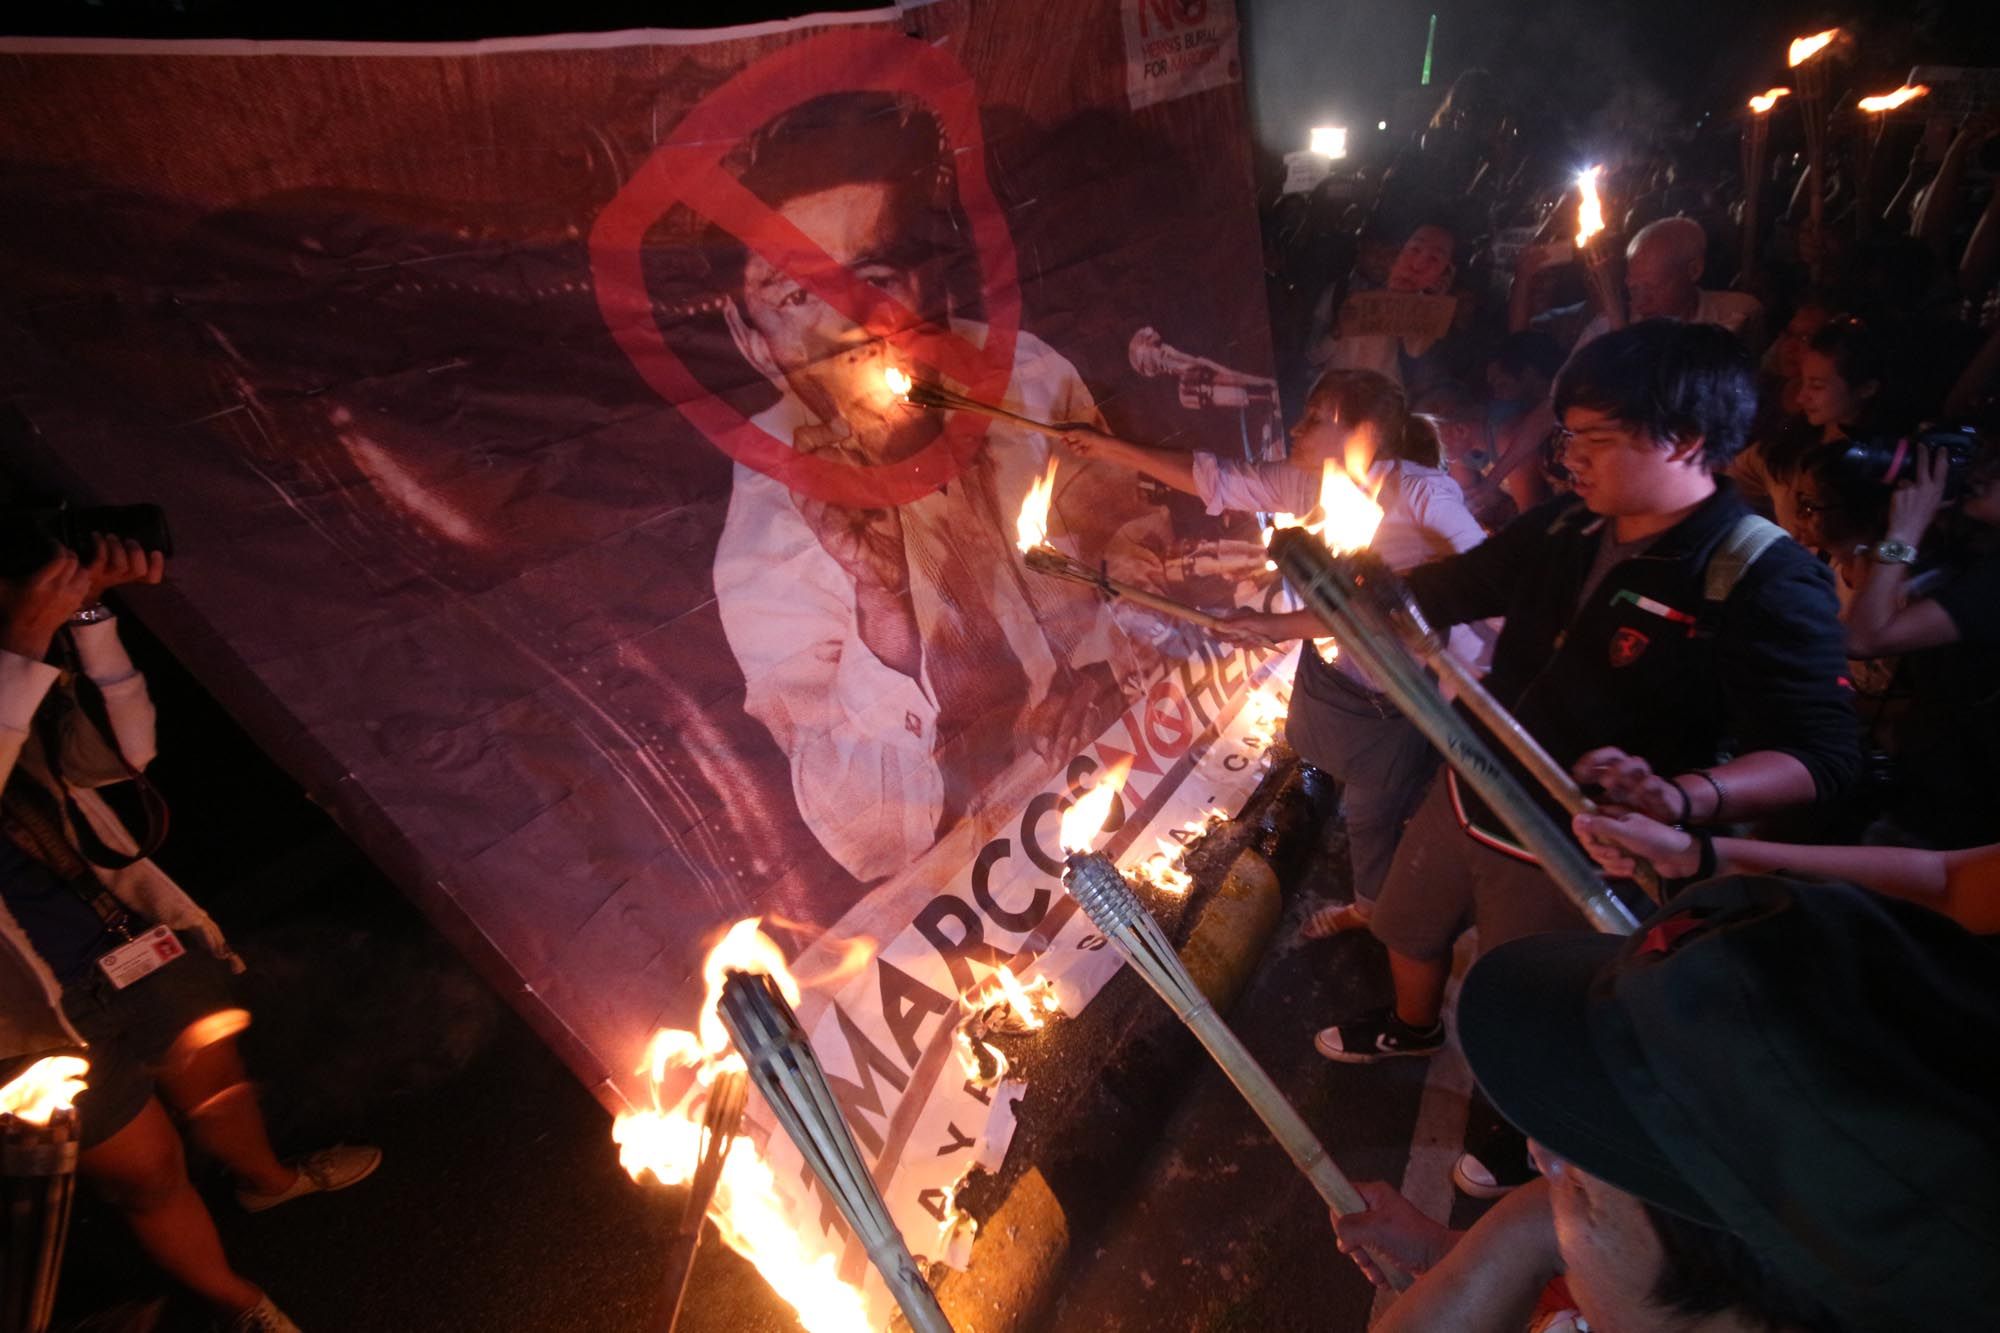 NEVER AGAIN. UP students and Martial Law victims torch a large picture of the late dictator Ferdinand Marcos in a protest rally at the UP compound to condemn the Supreme Court's decision granting hero's burial of in the Libingan ng mga Bayani. Photo by Joel Liporada/ Rappler